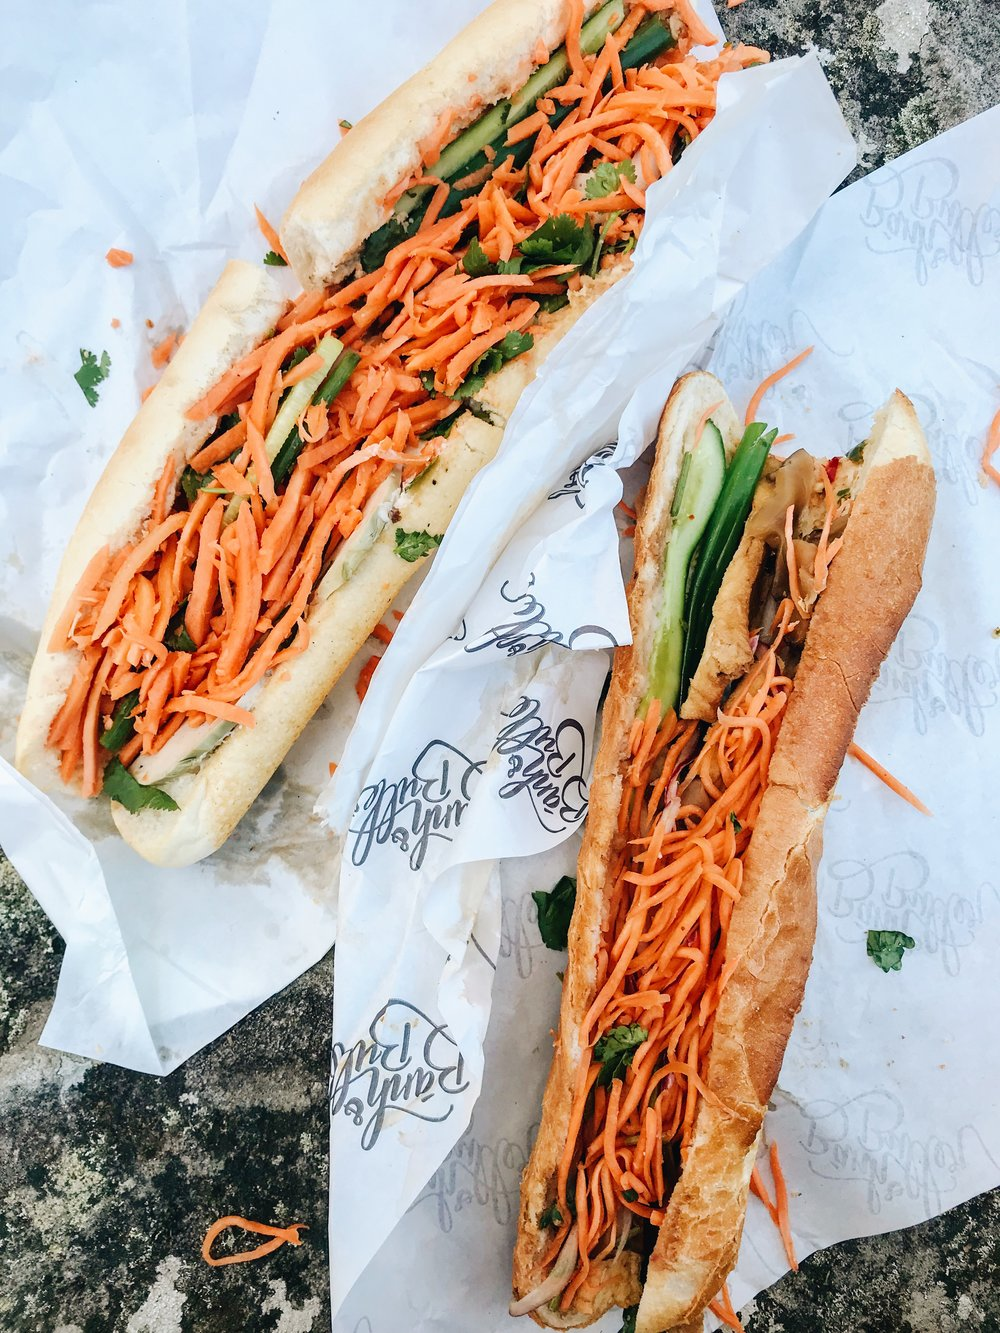 Left: Large Banh Mi from Rolls Vietnam, North Sydney  Right: Delicious Baguette stuffed with Caramelised Tofu and Shiitake Mushroom from Banh & Butter, CBD